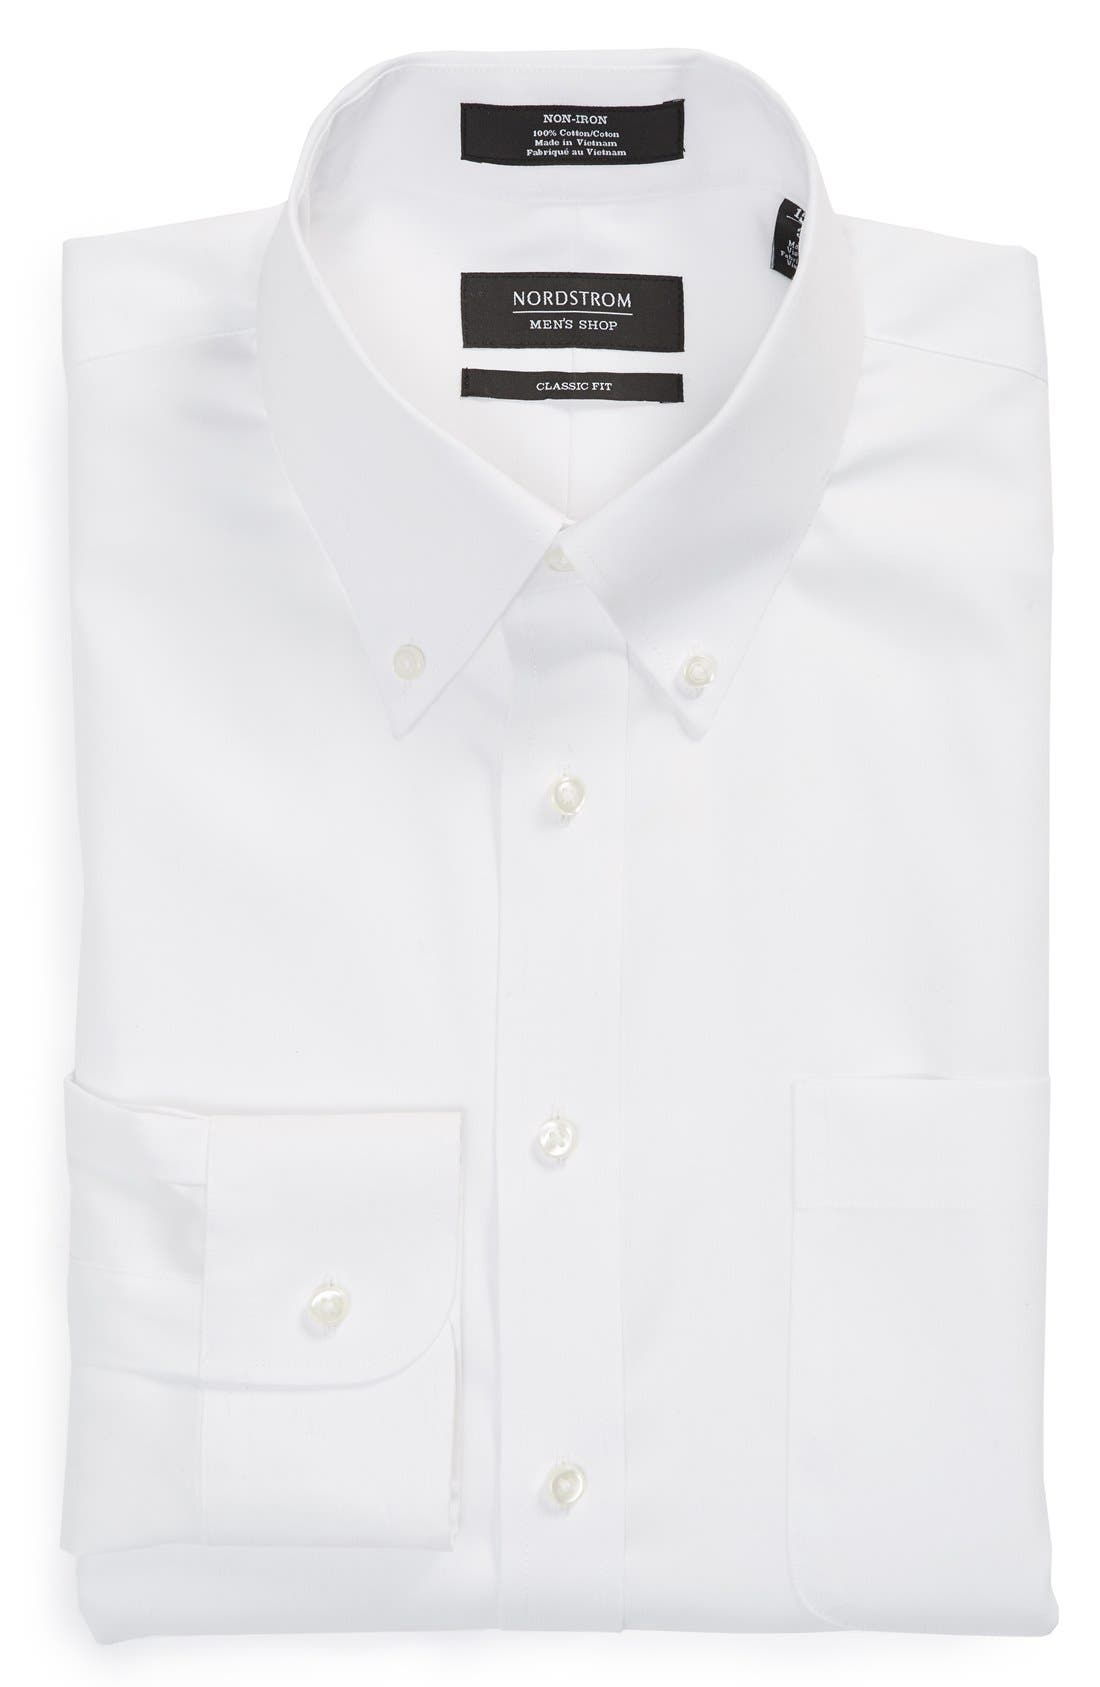 Alternate Image 4  - Nordstrom Men's Shop Classic Fit Non-Iron Solid Dress Shirt